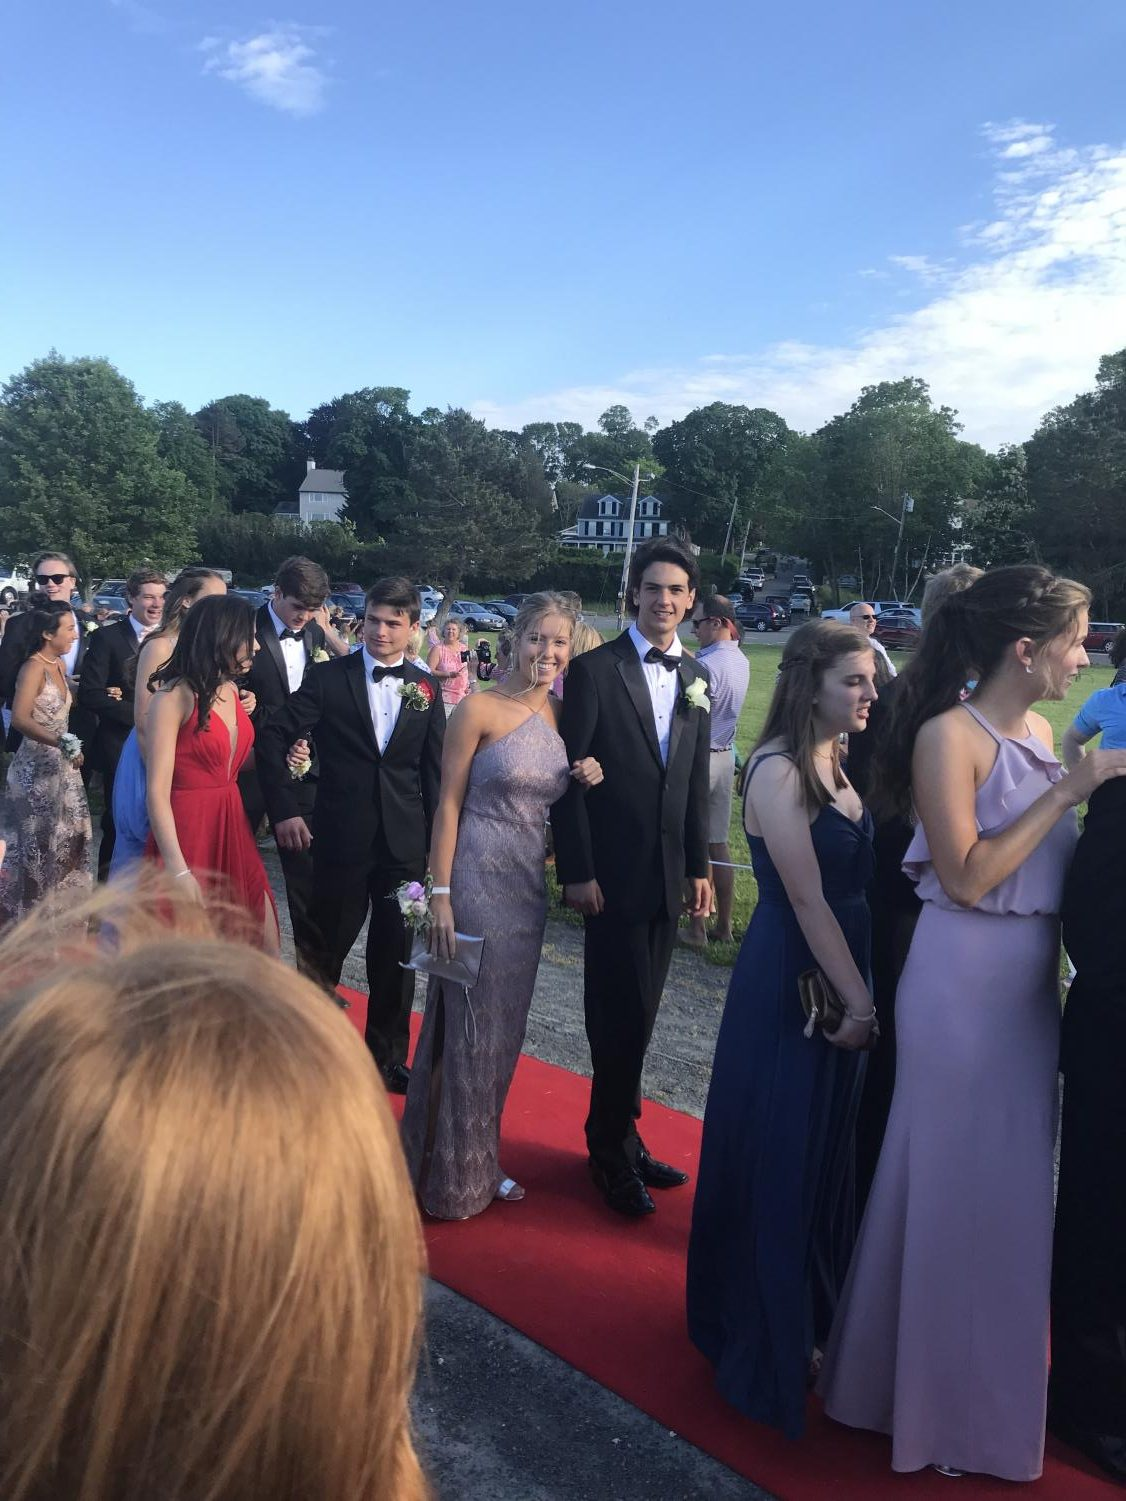 Prom-goers walking the red carpet before heading to Lombardo's where the prom itself was held.